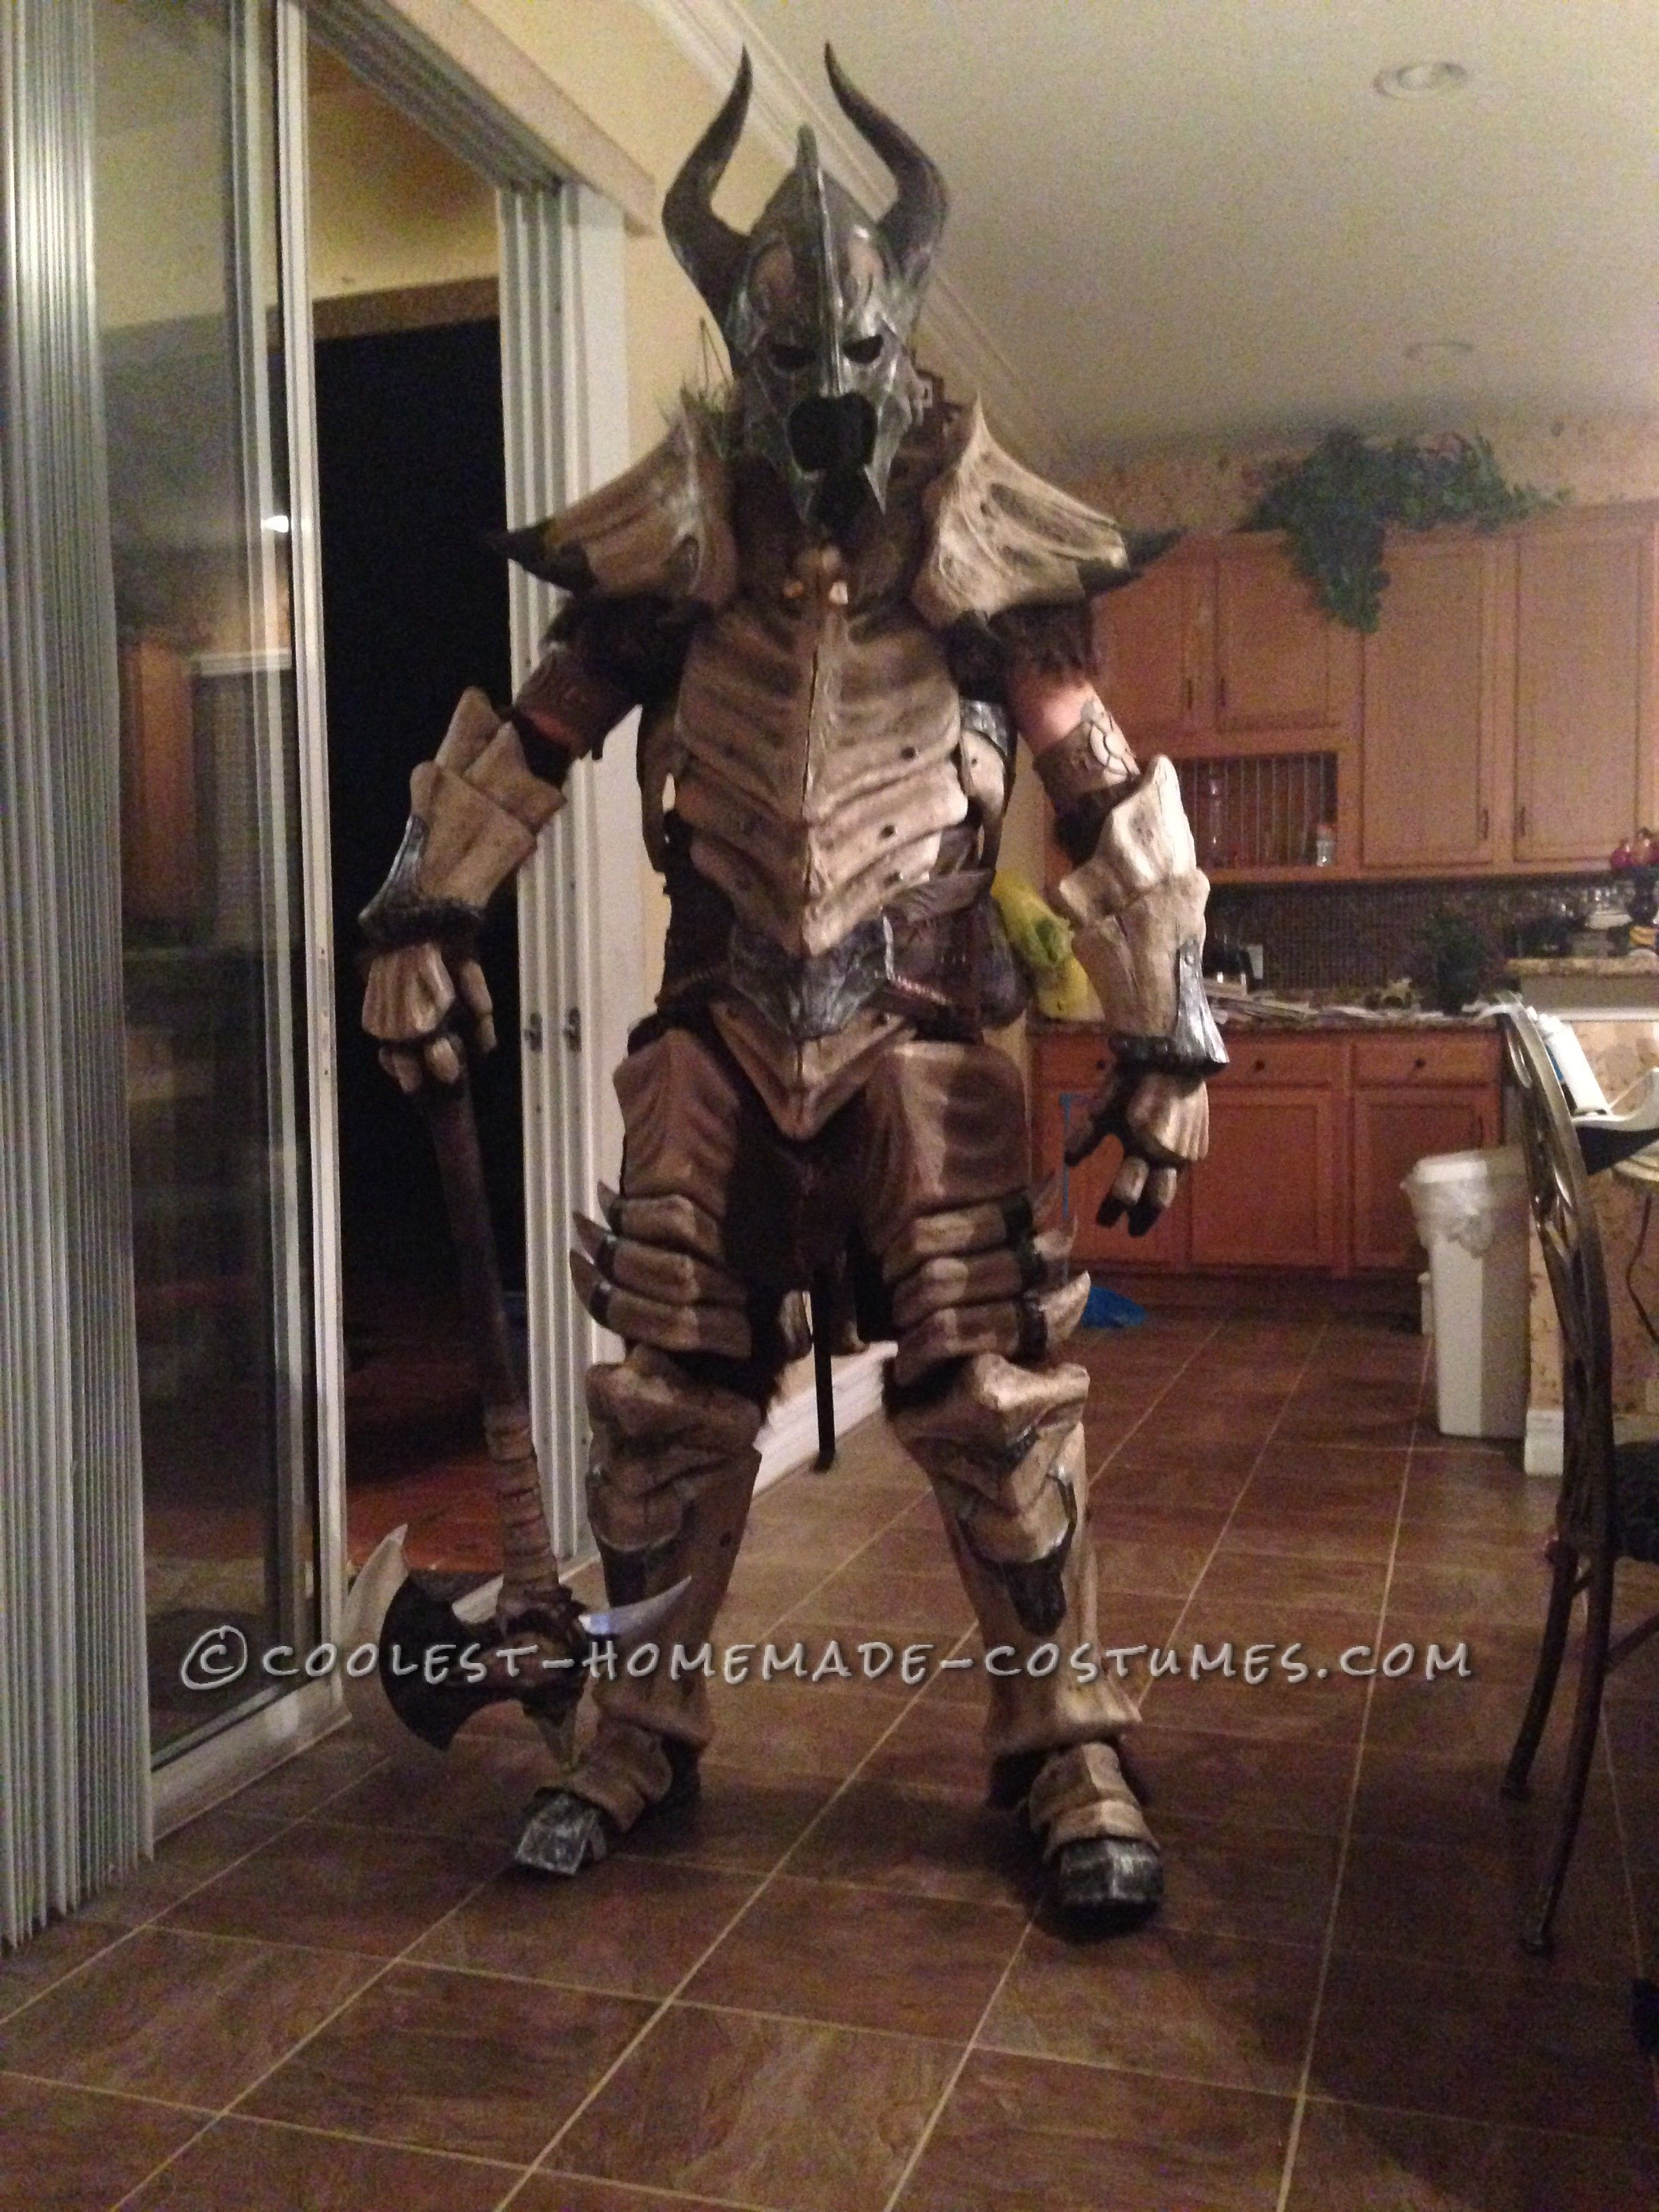 skyrim dragonbone armor costume | coolest homemade costumes